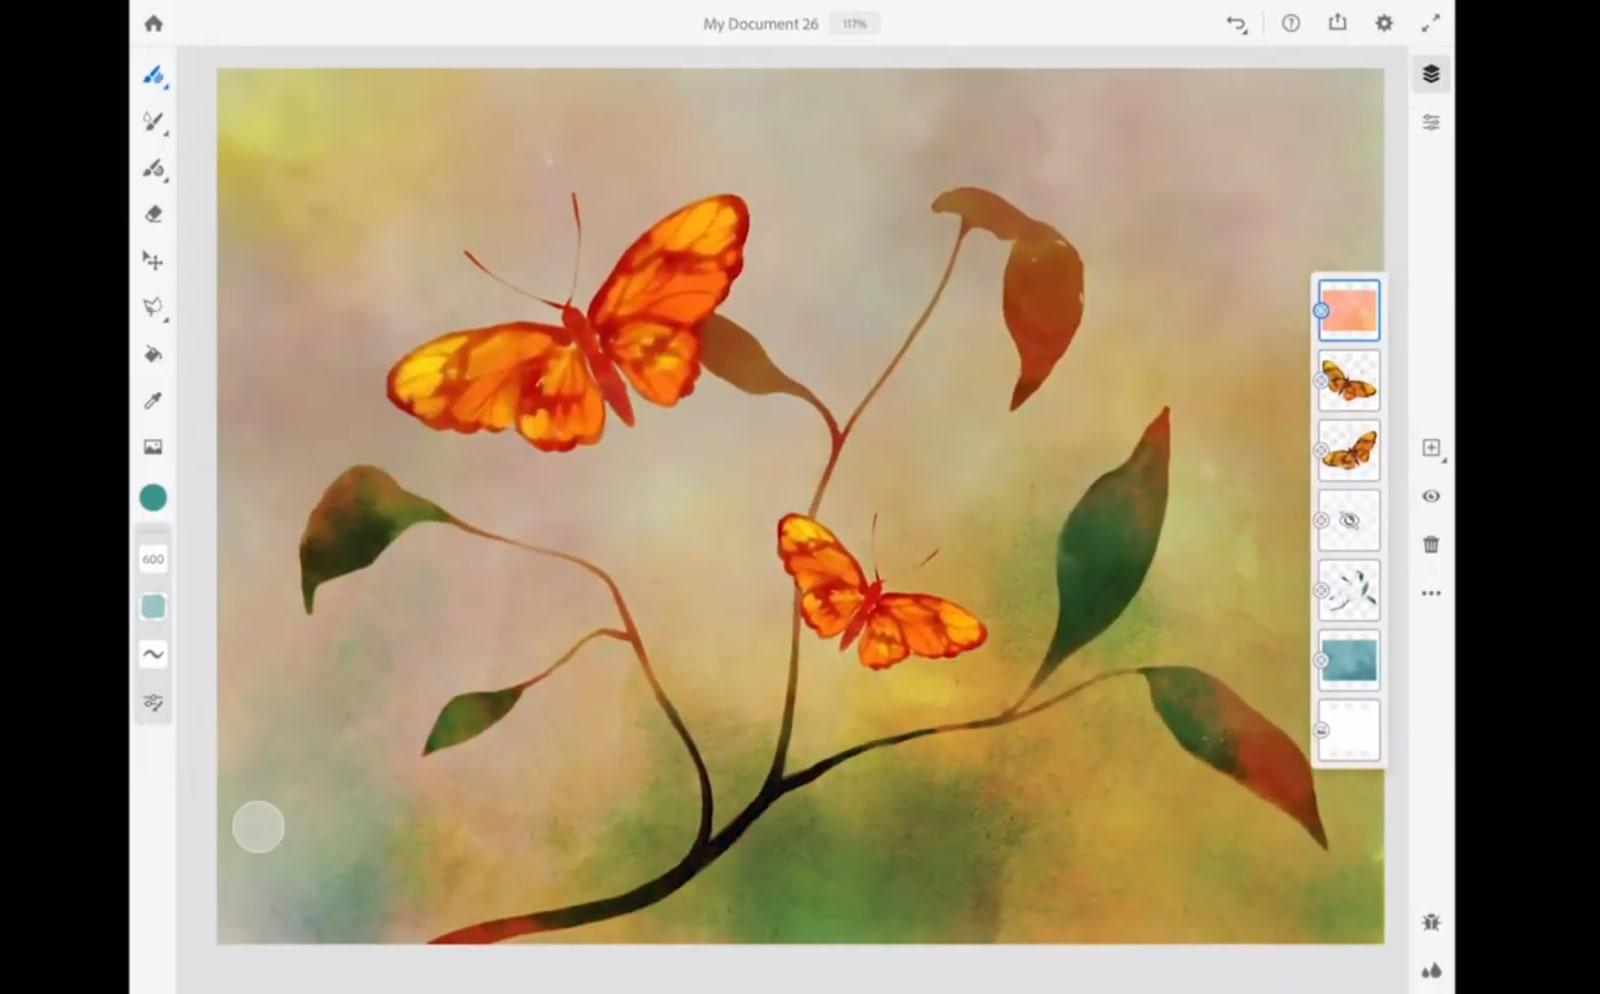 Adobe's upcoming iPad painting app is called Adobe Fresco